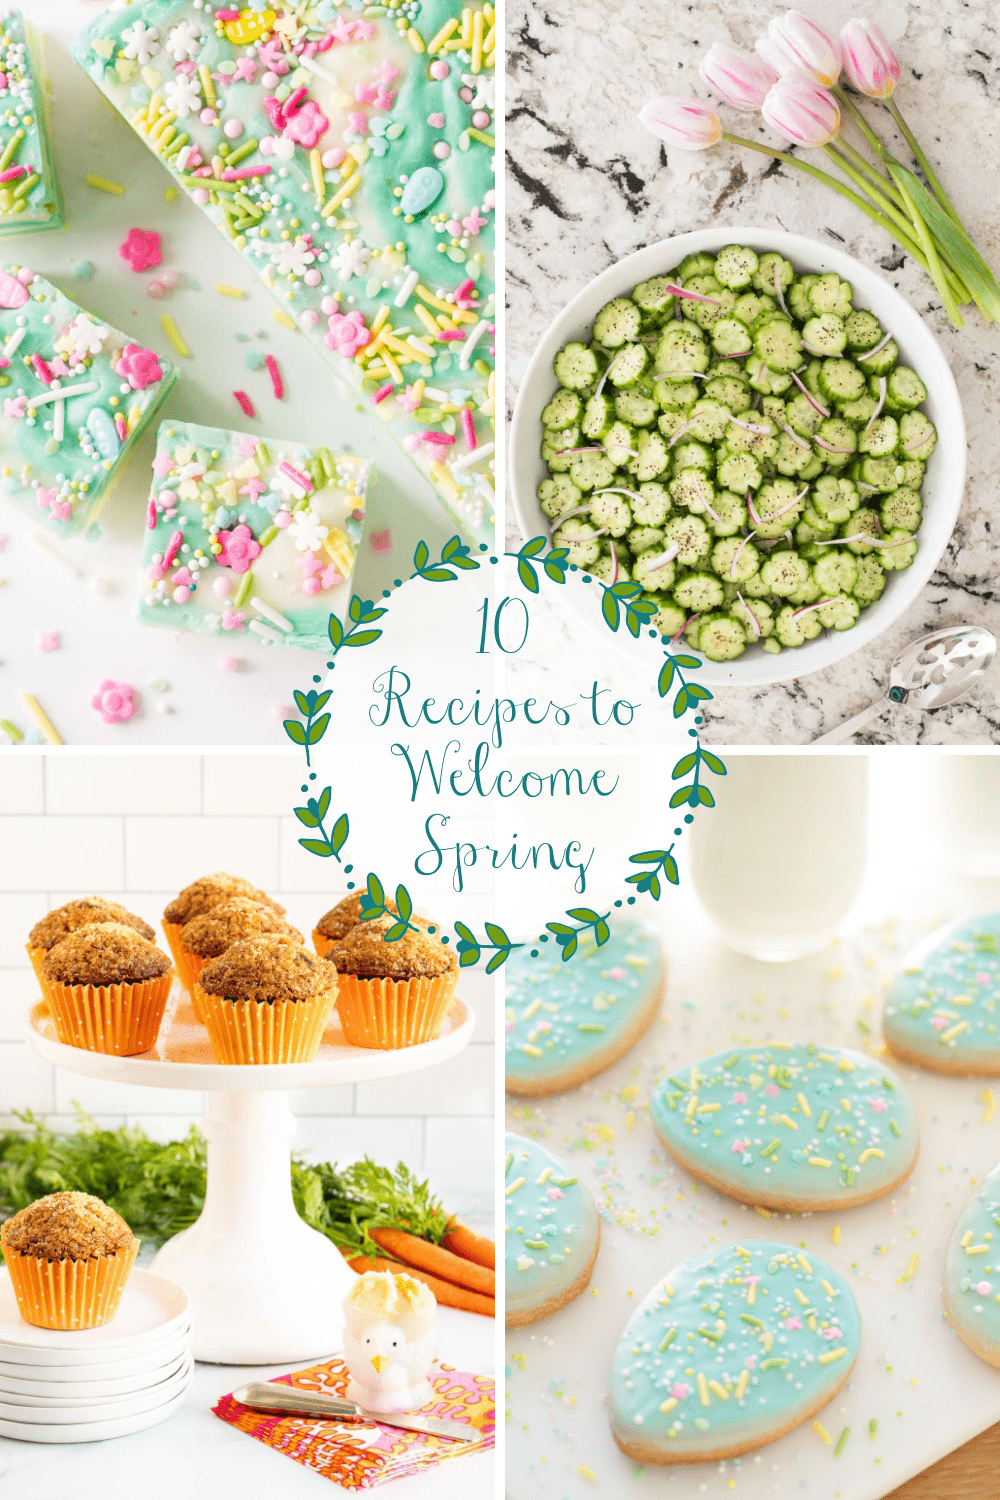 Delicious Recipes To Put A Little Spring in Your Step!